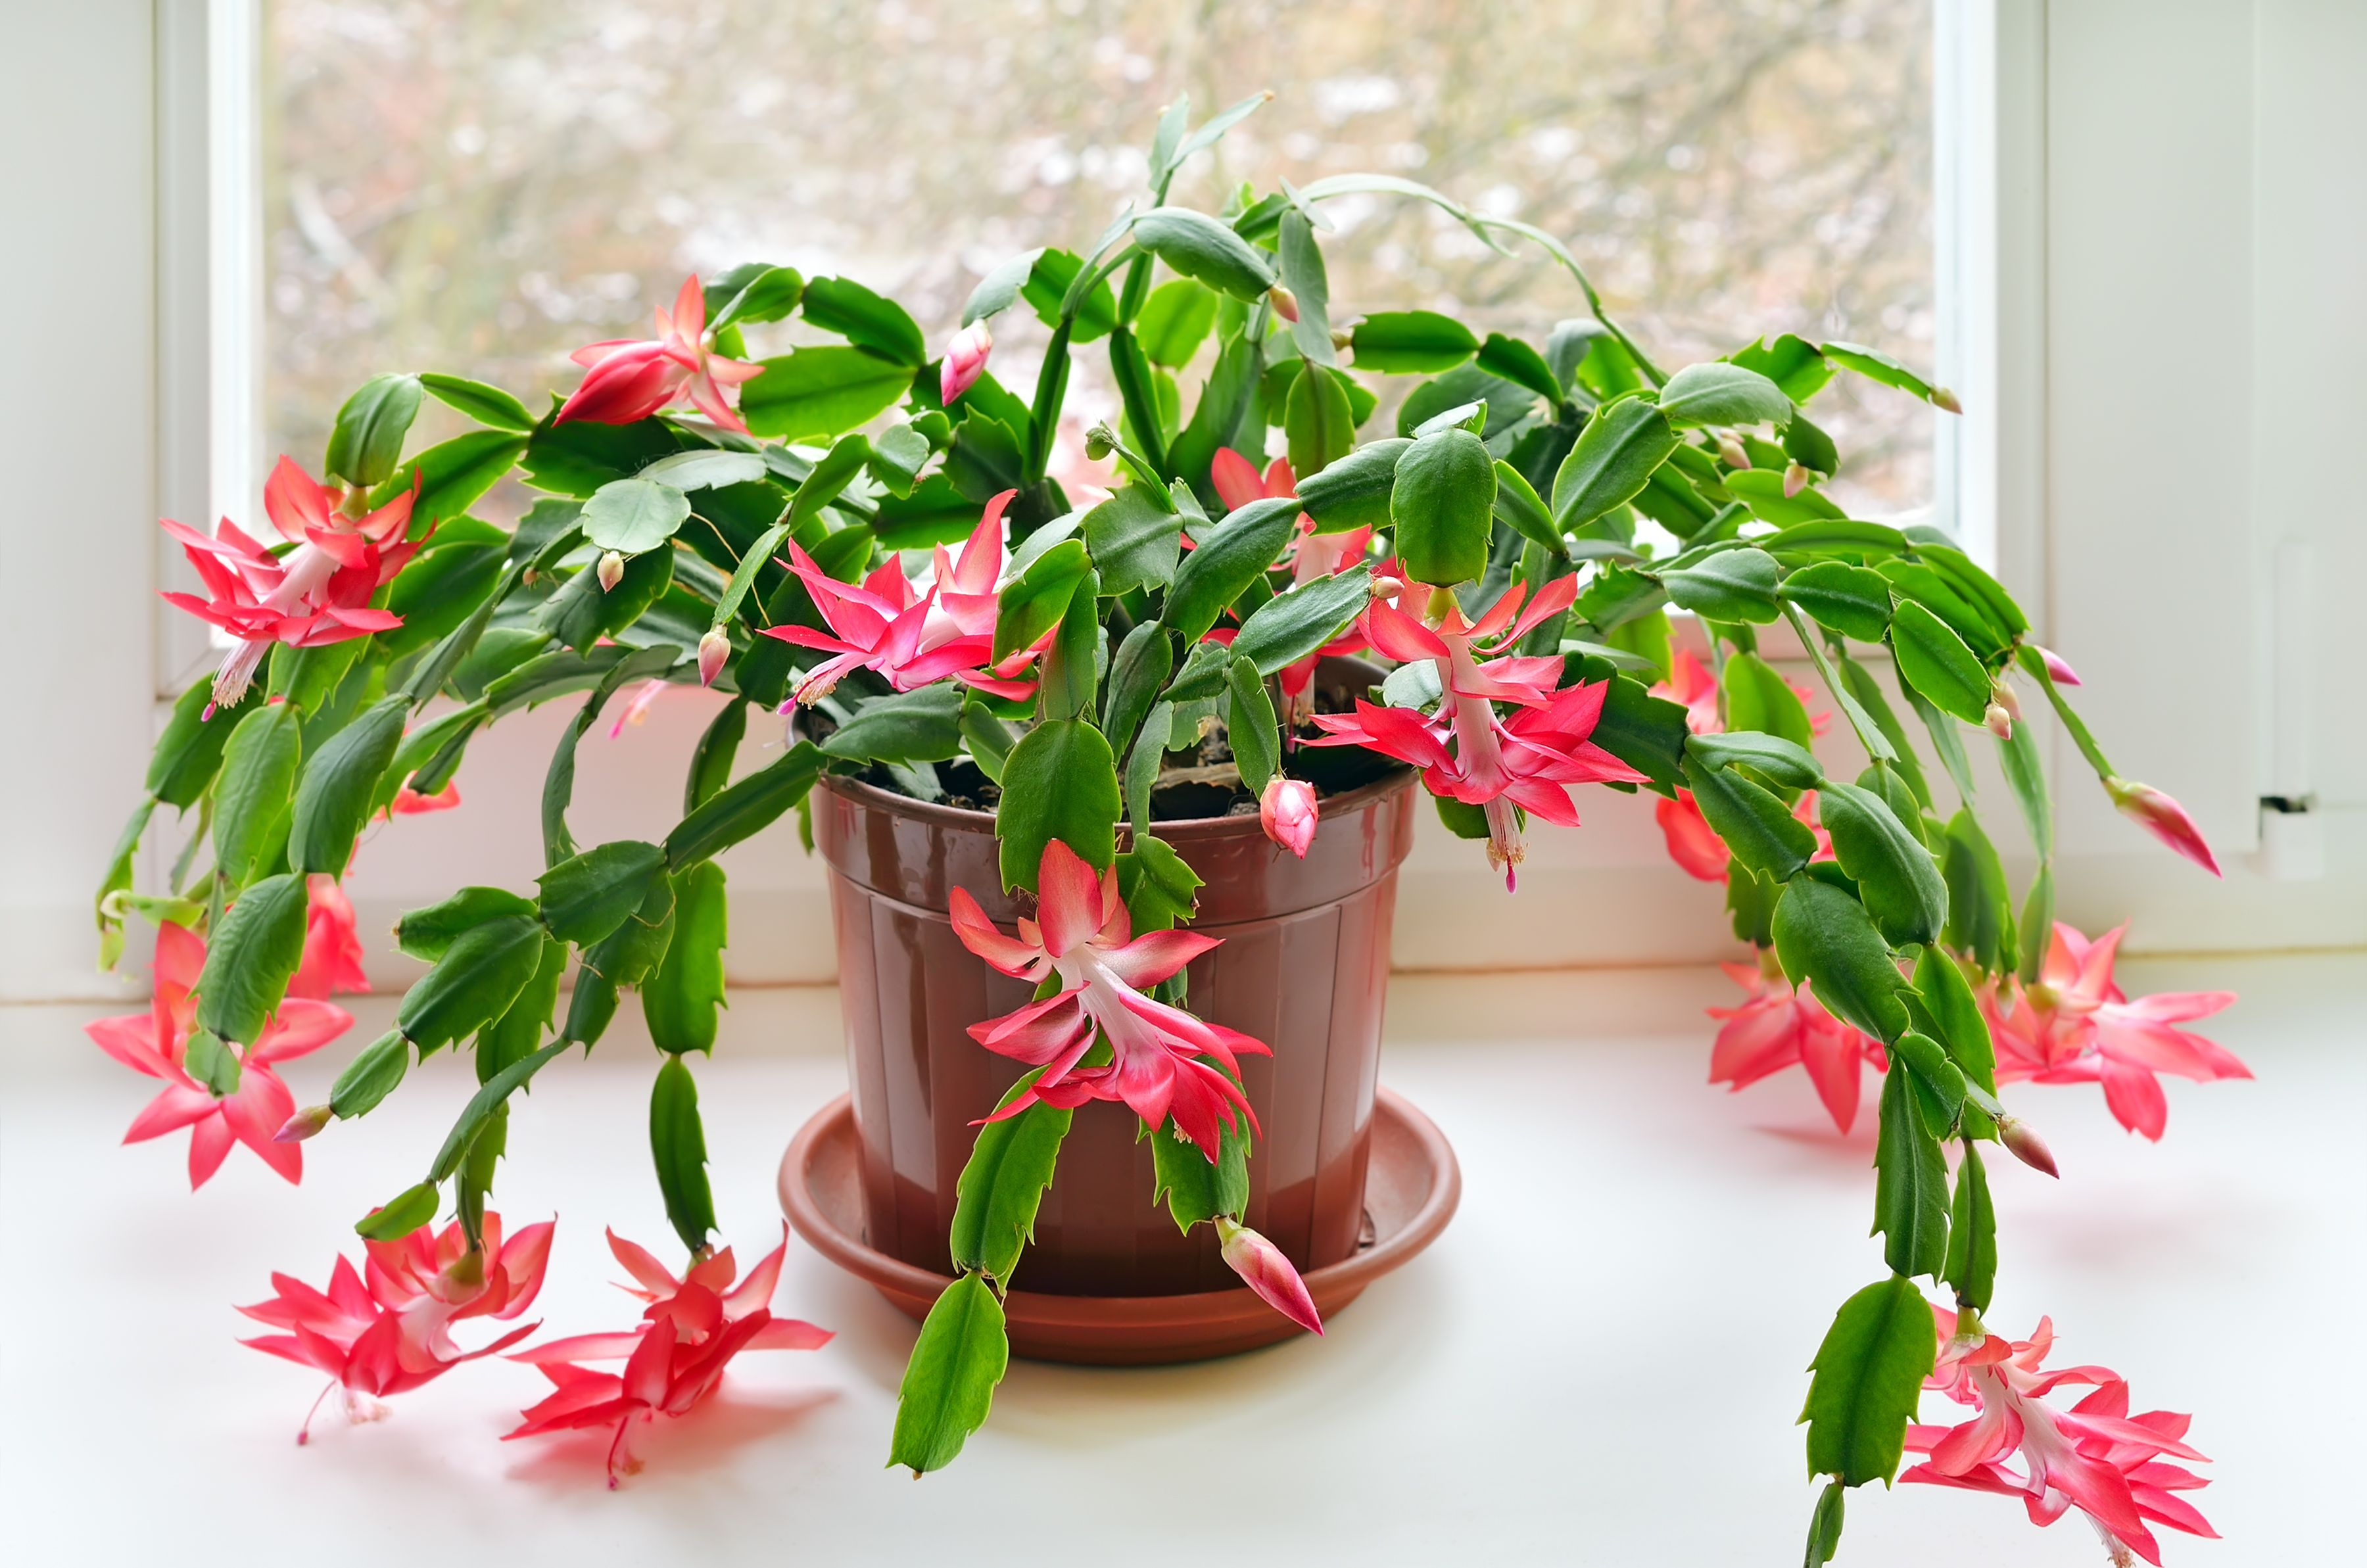 How to Care for Christmas Cactus Indoors - Christmas Cactus Plant